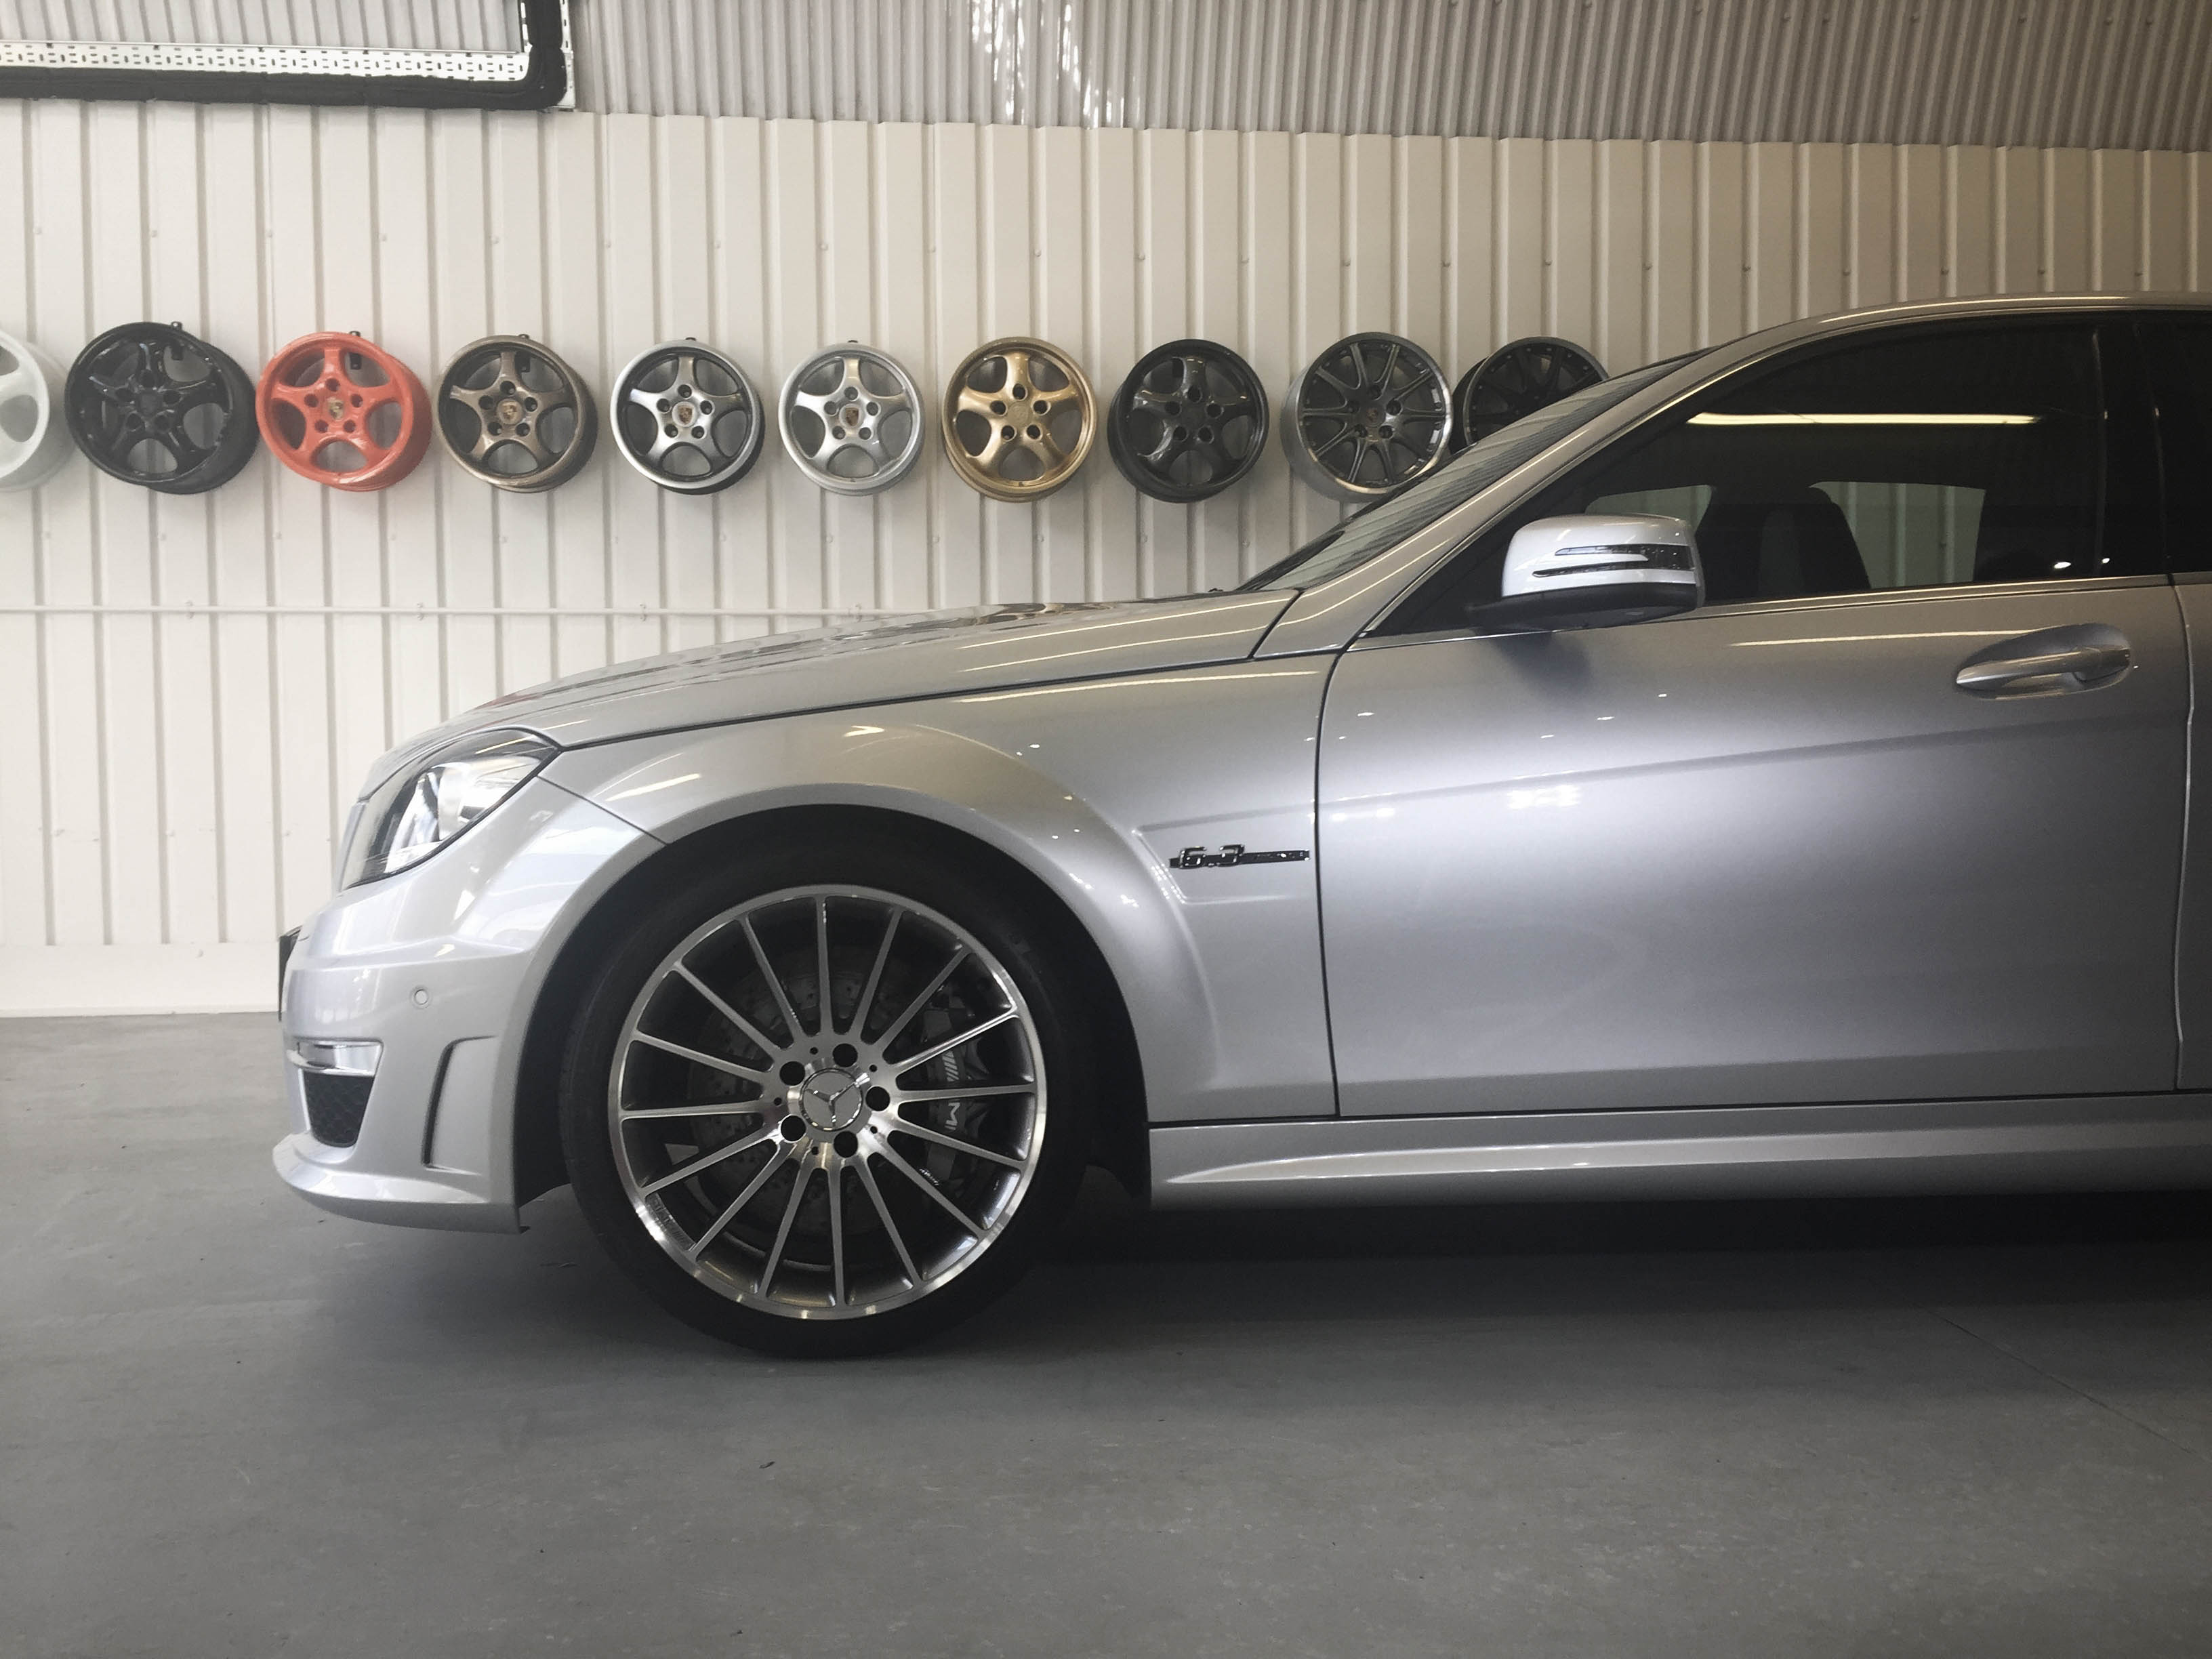 Mercedes C63 AMG – Front wheel